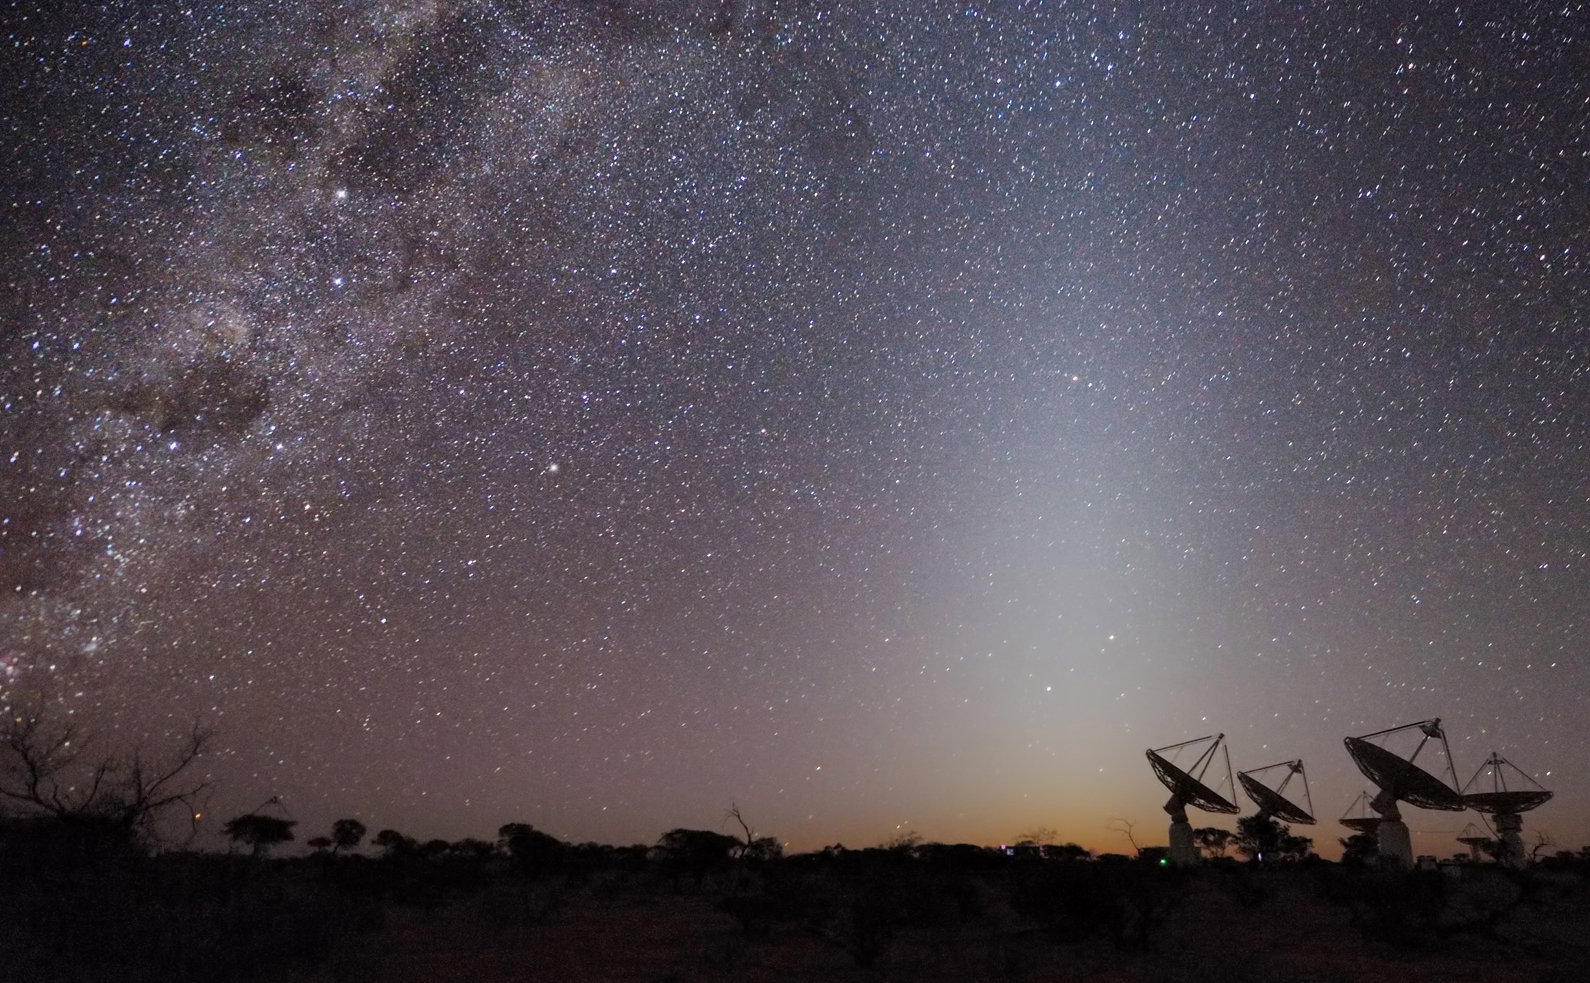 View of a starry night sky with radio telescopes in the background.